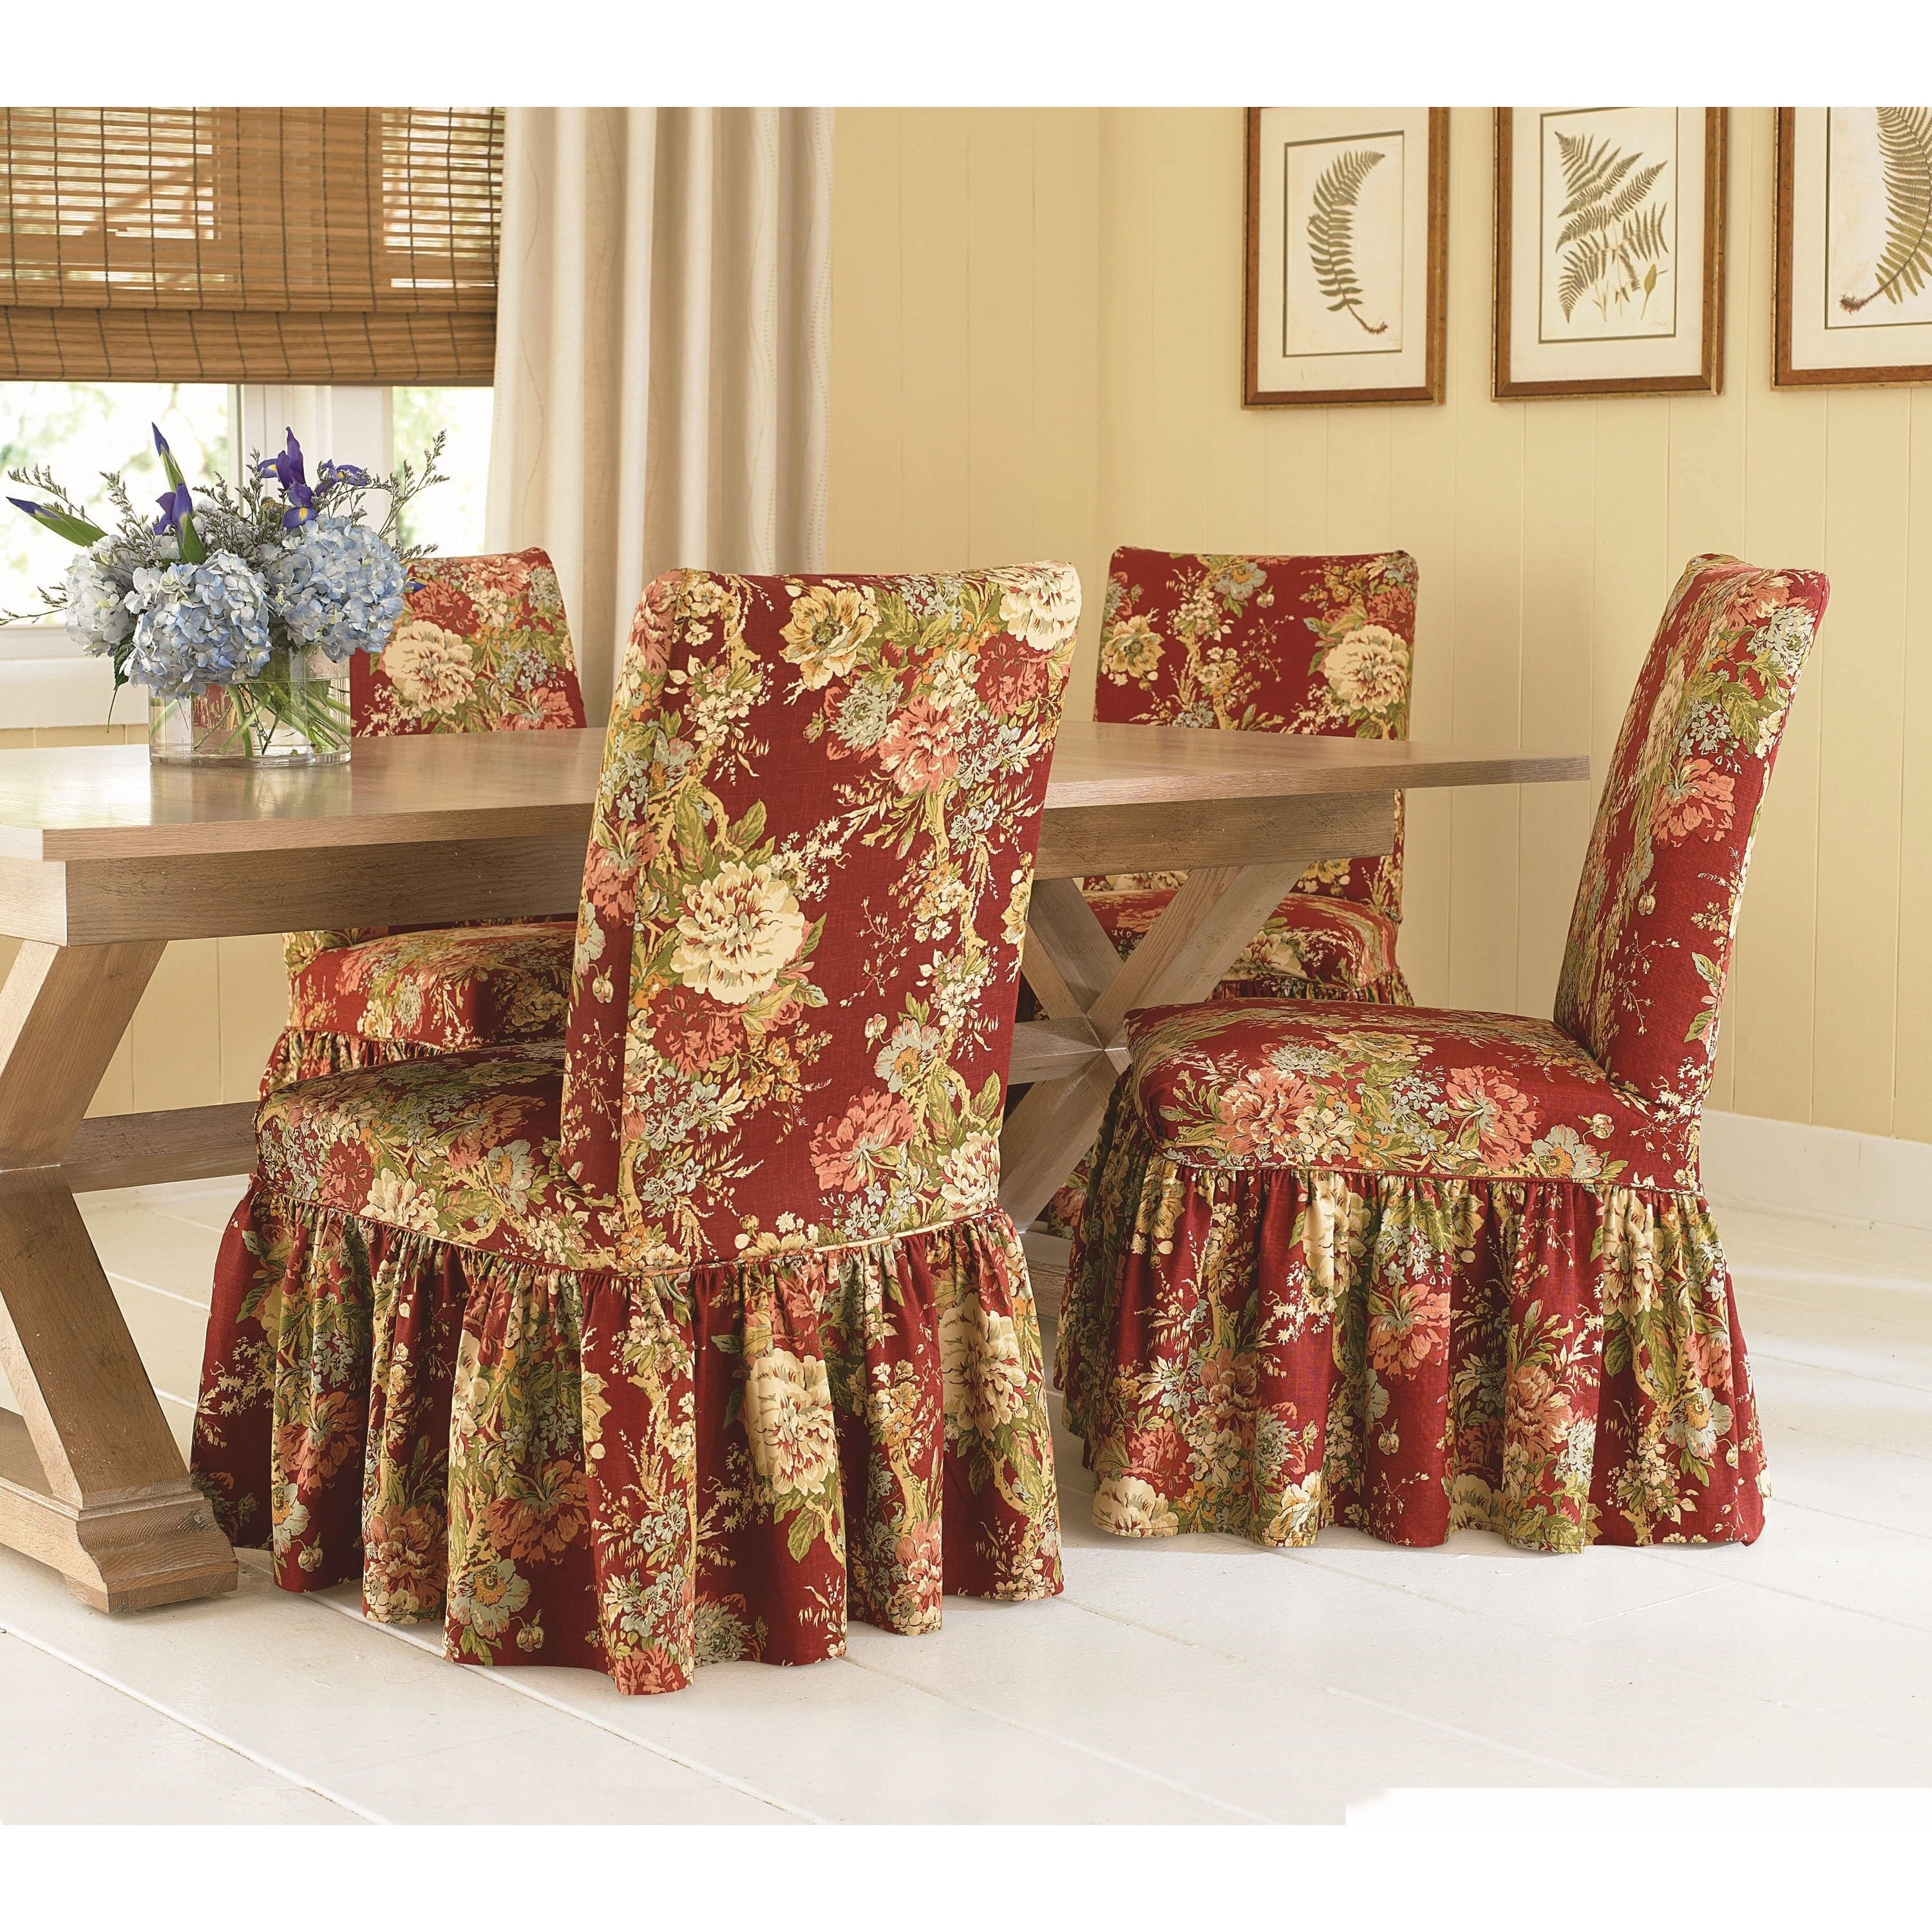 Floral Slipcovers Furniture Covers Find Great Home Decor